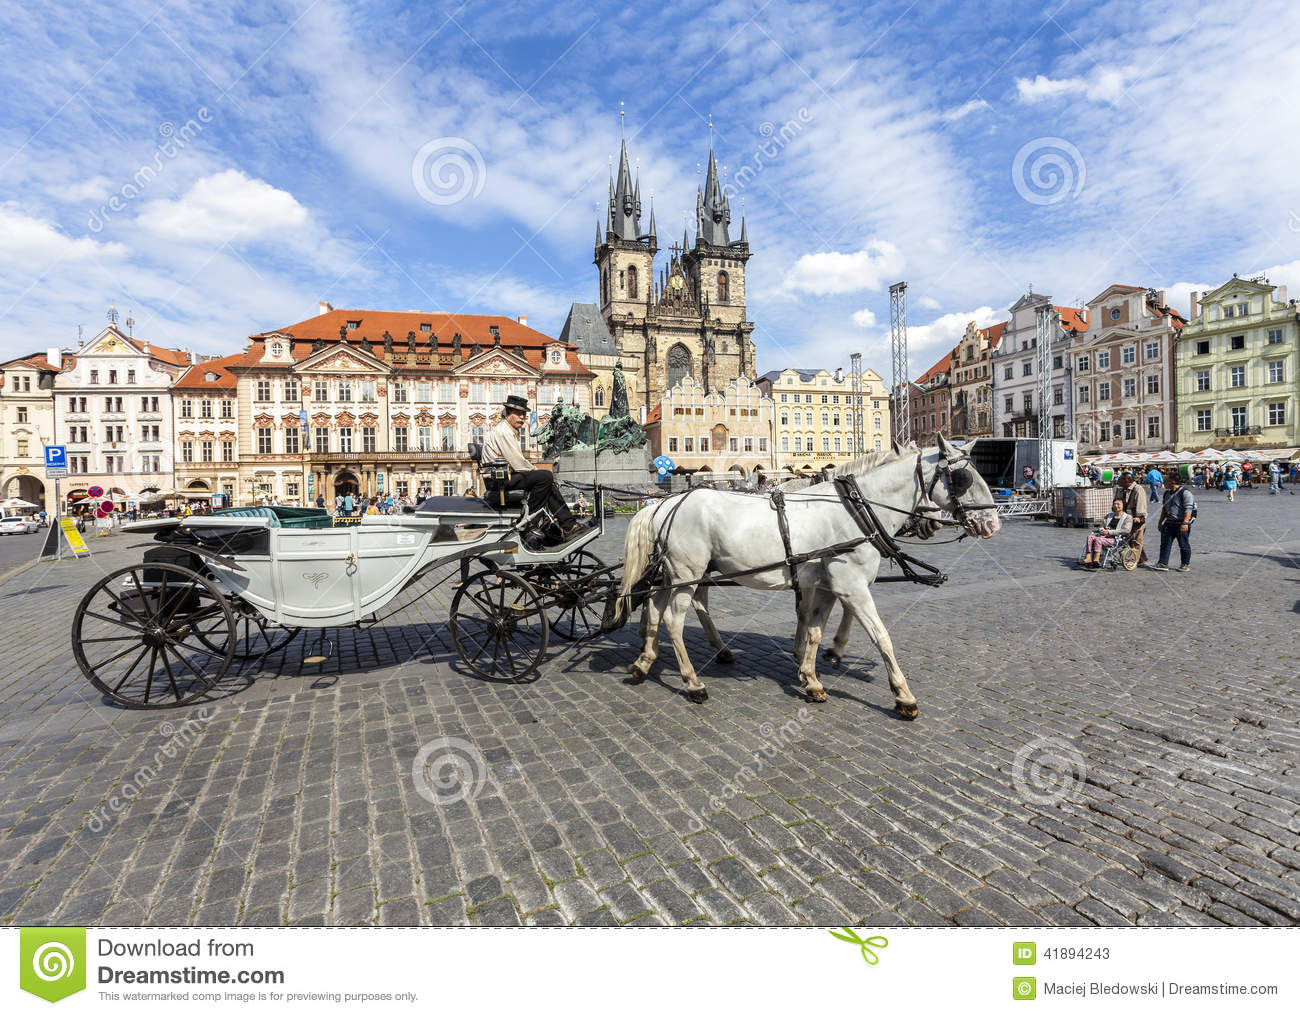 b2c0b93d4df Horse Carriage Waiting For Tourists At The Old Square In Prague ...